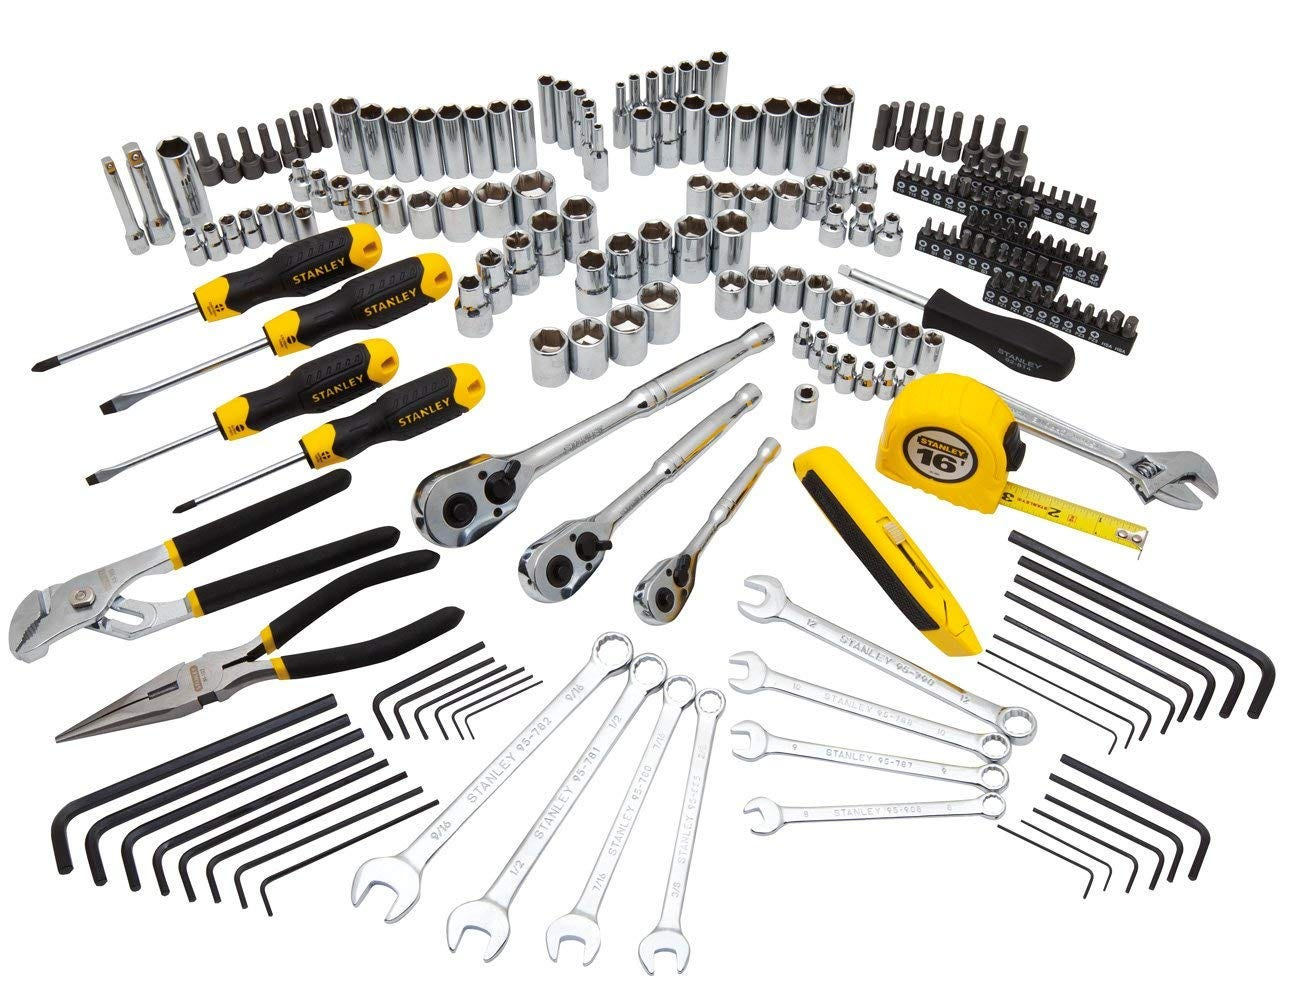 stanley, tool kit, tool set, all in one,